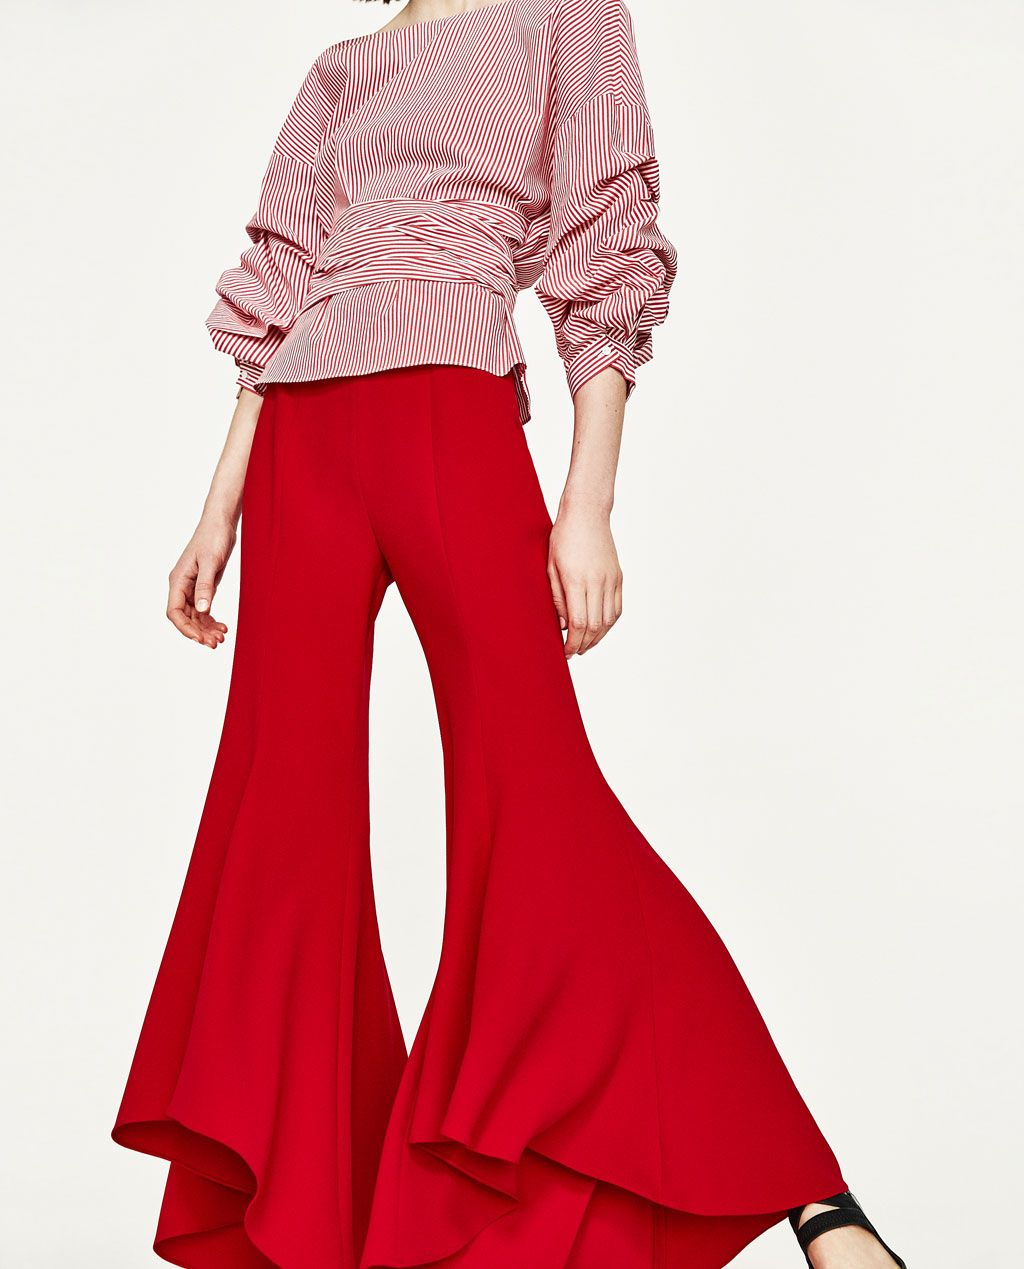 bdf6652fc633 Image 4 of ASYMMETRIC FLARE TROUSERS from Zara | Things to Wear ...